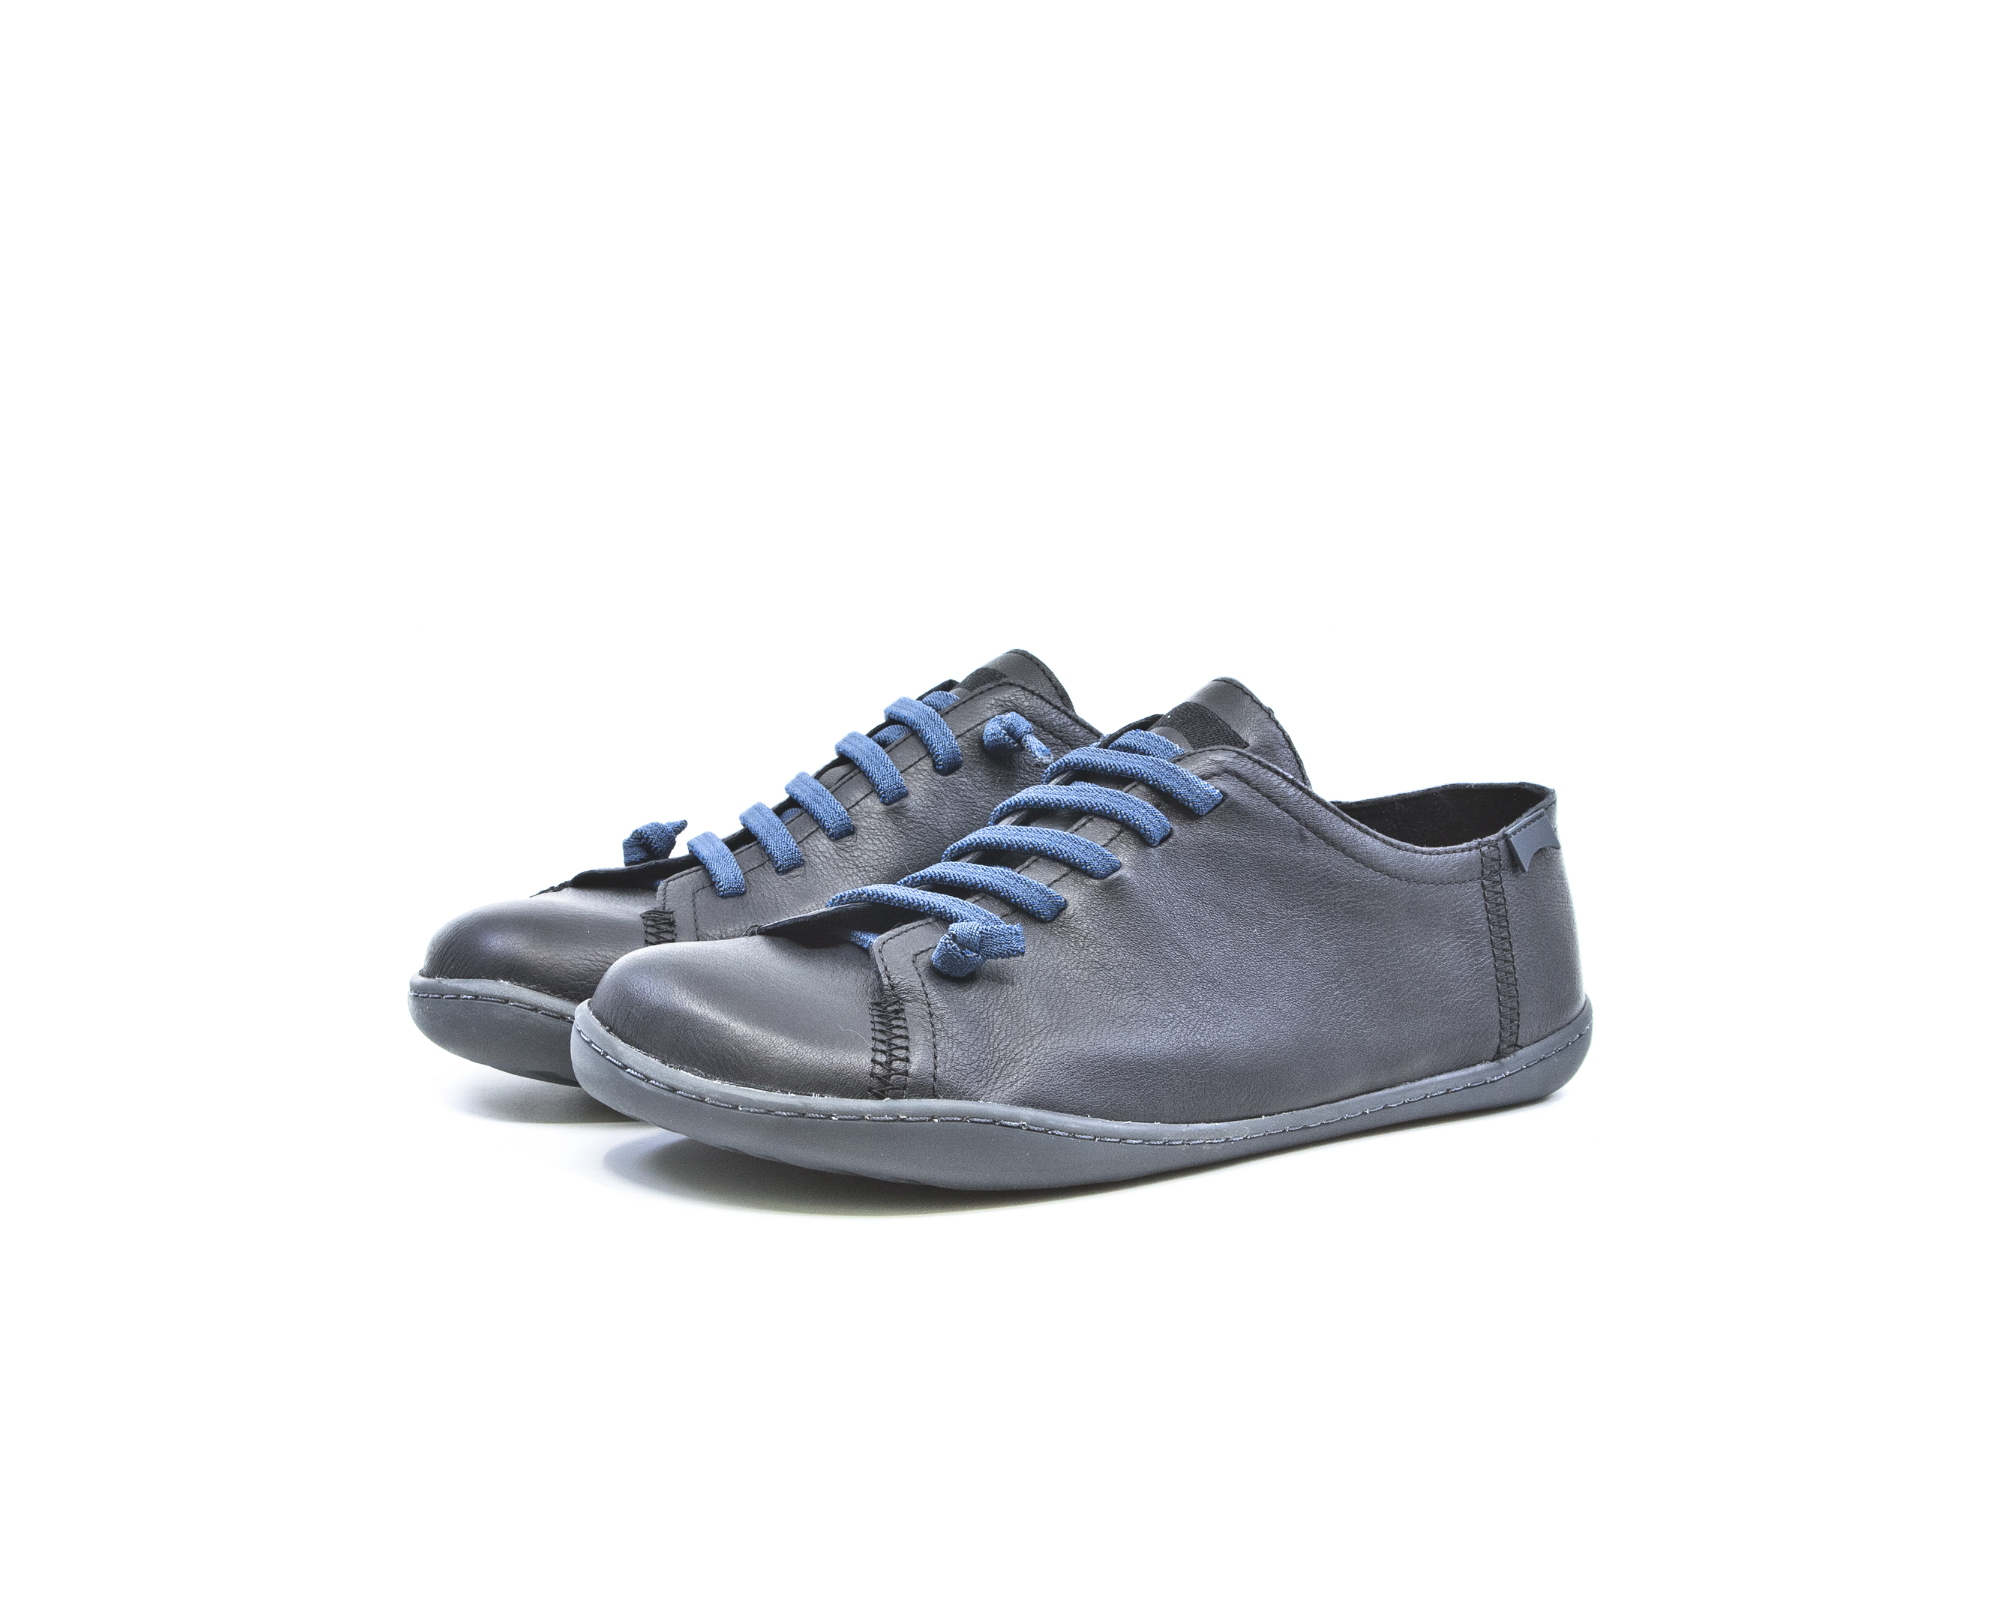 39d57a28628 Camper Peu Cami Ανδρικά Ανατομικά Sneakers Μαύρο (K100300-004) -  LifeShoes.gr